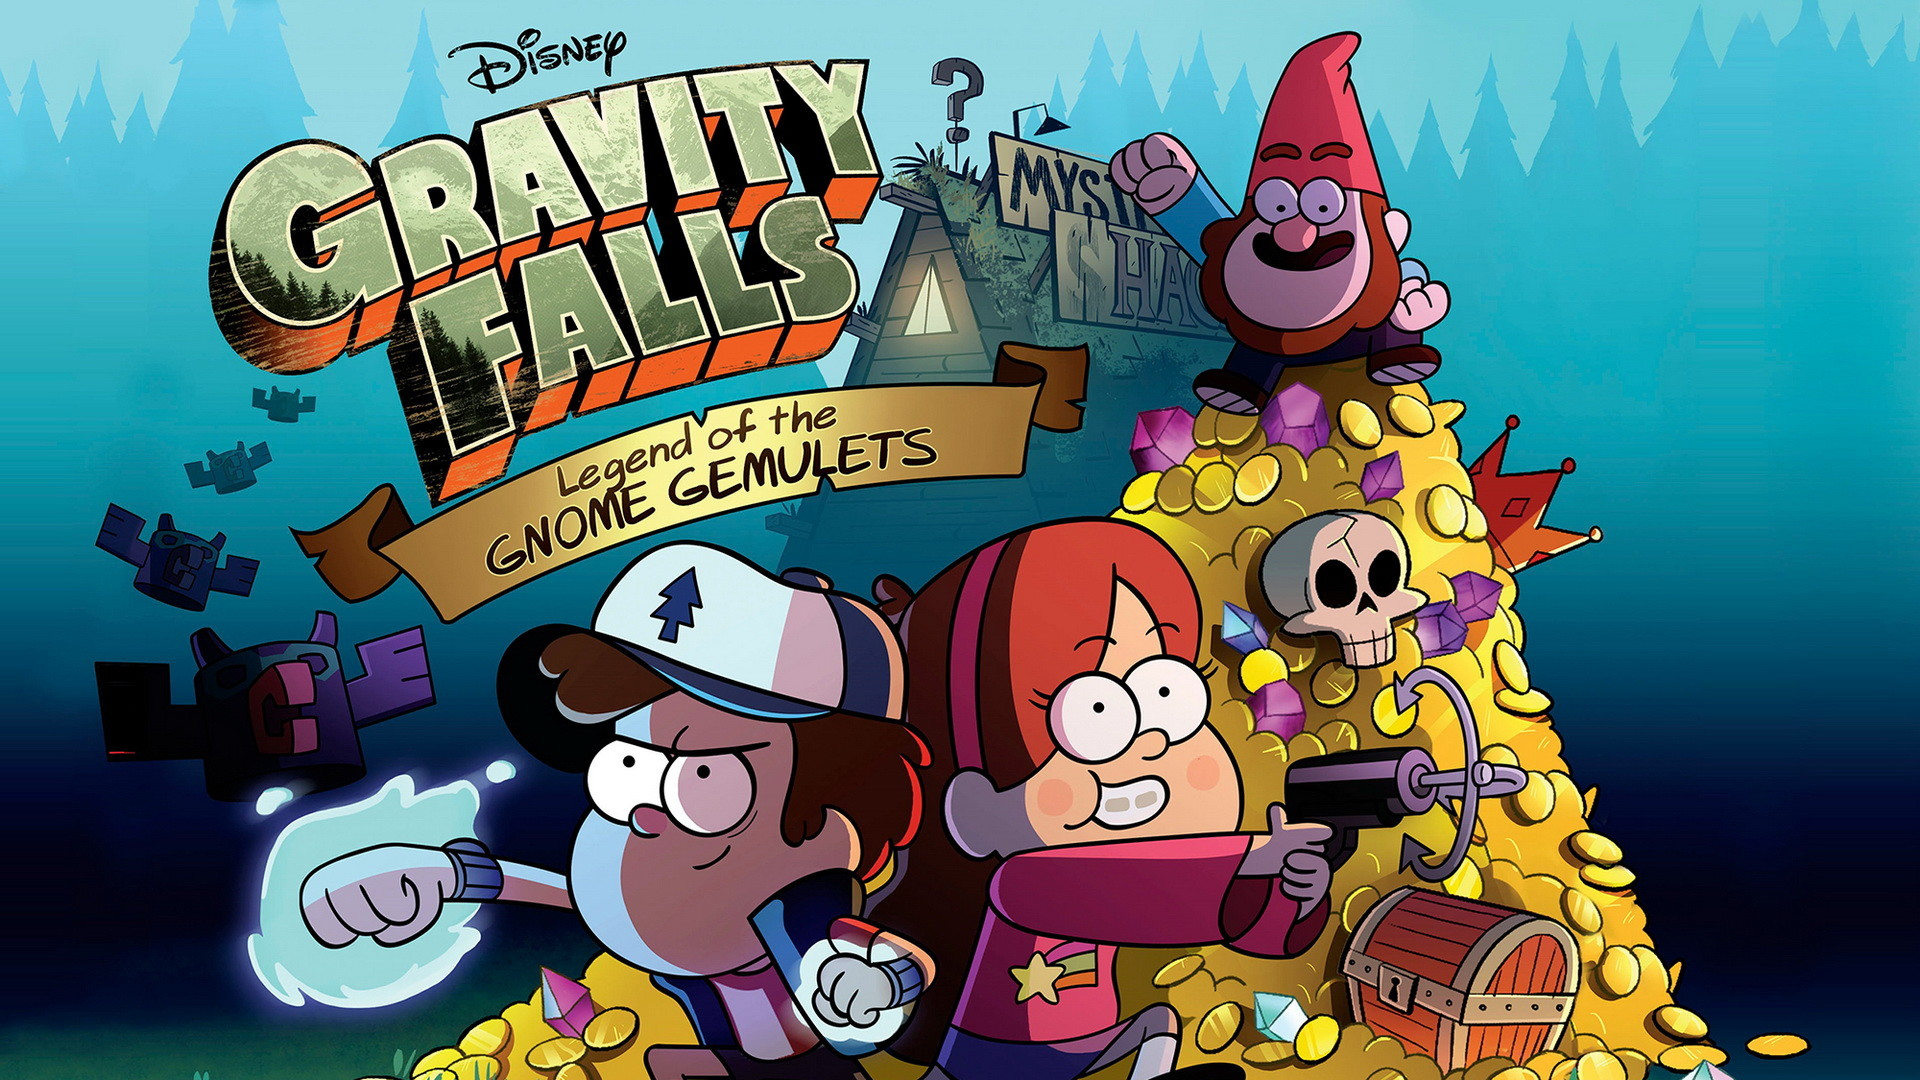 1920x1080 Gravity Falls - Legend of Gnome Gemulets